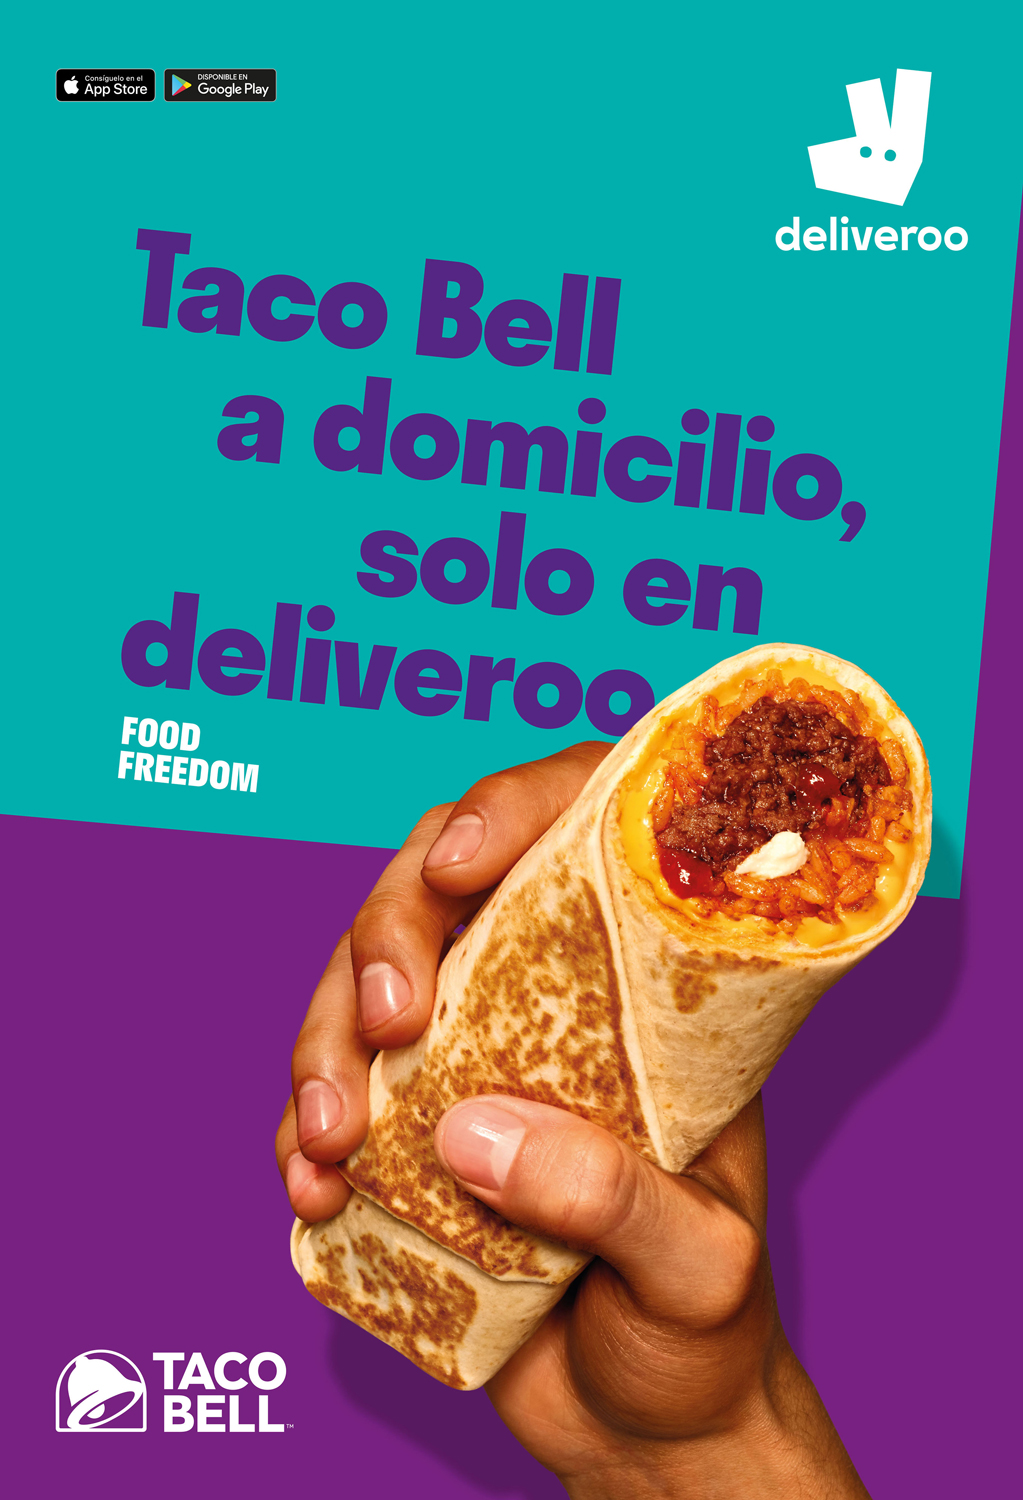 Approach_Retouch_London_Deliveroo_Spain_Taco_Bell_Text-1